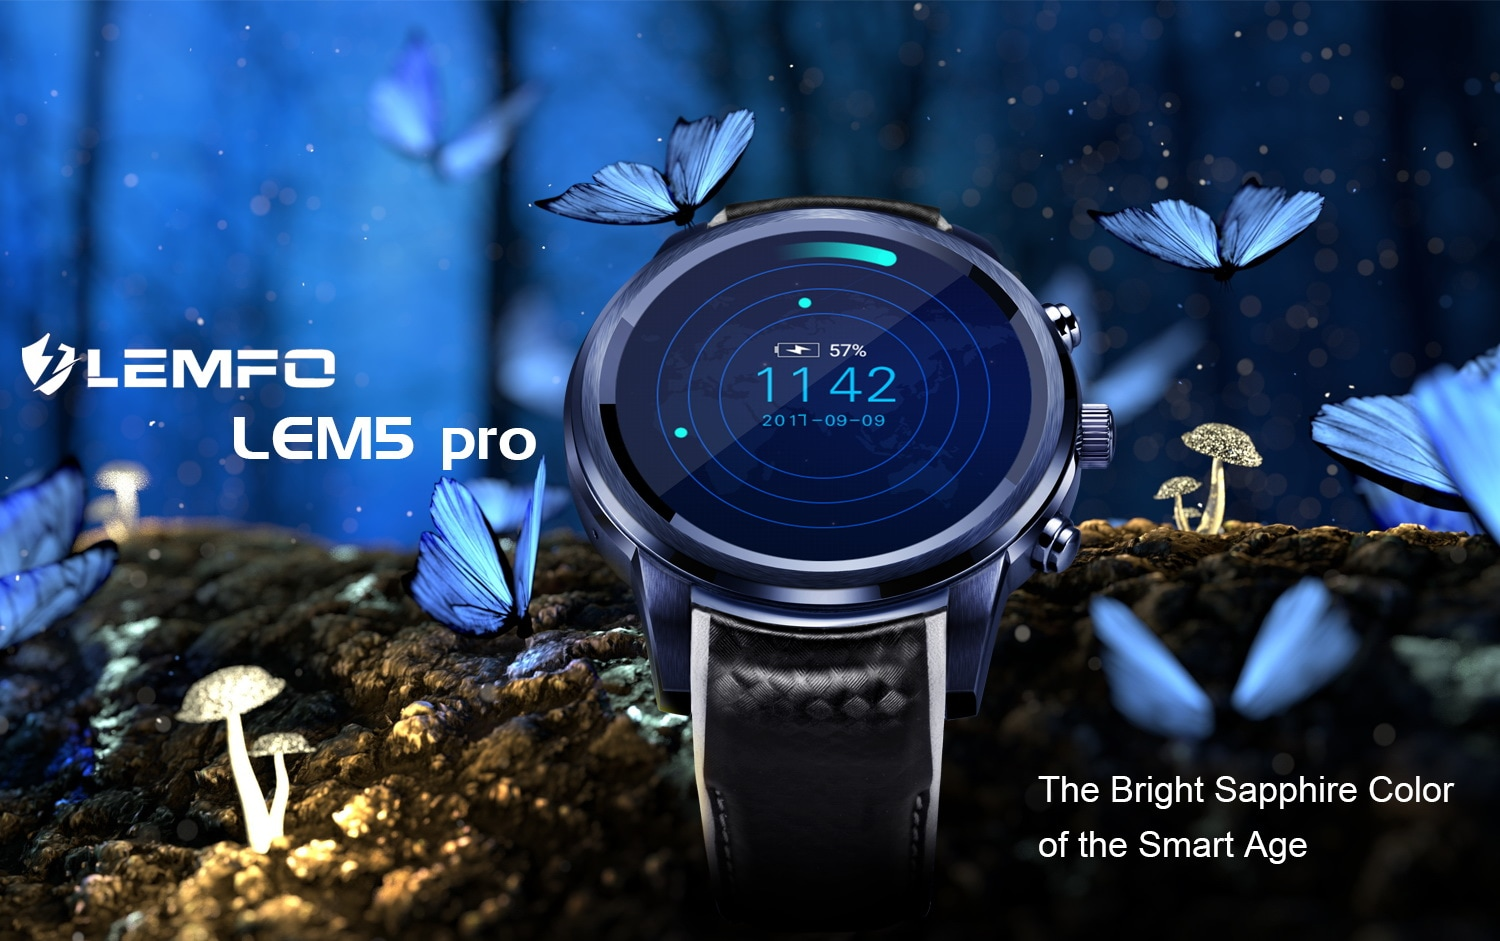 LEMFO LEM5 PRO Watch Phone-1 IMEI, 3G, WiFi, Music, Pedometer, Heart Rate, Android OS - 4